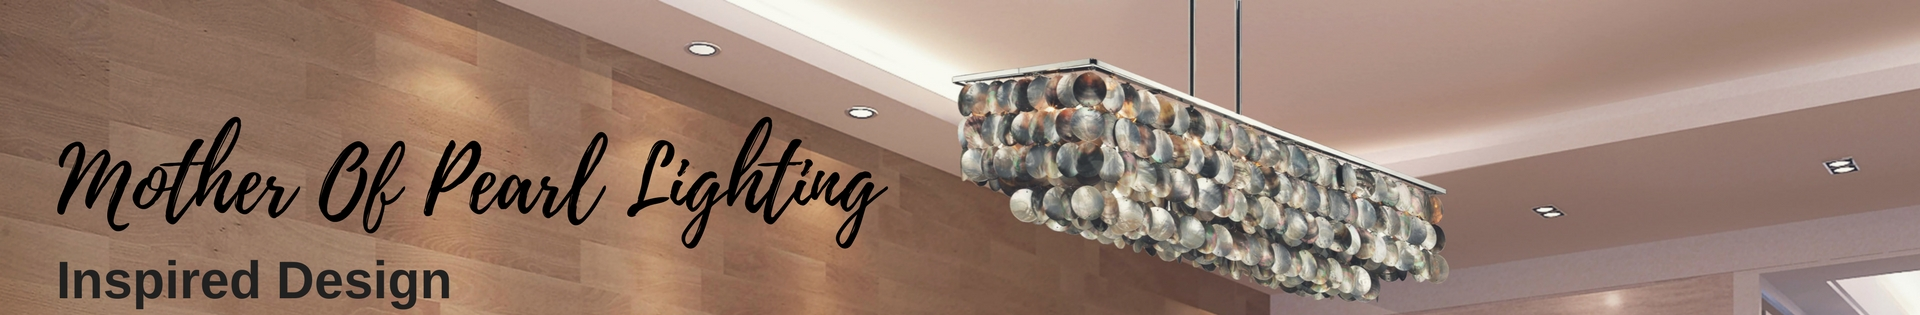 1920X315 Mother Of Pearl Product Category Banner Glow Lighting